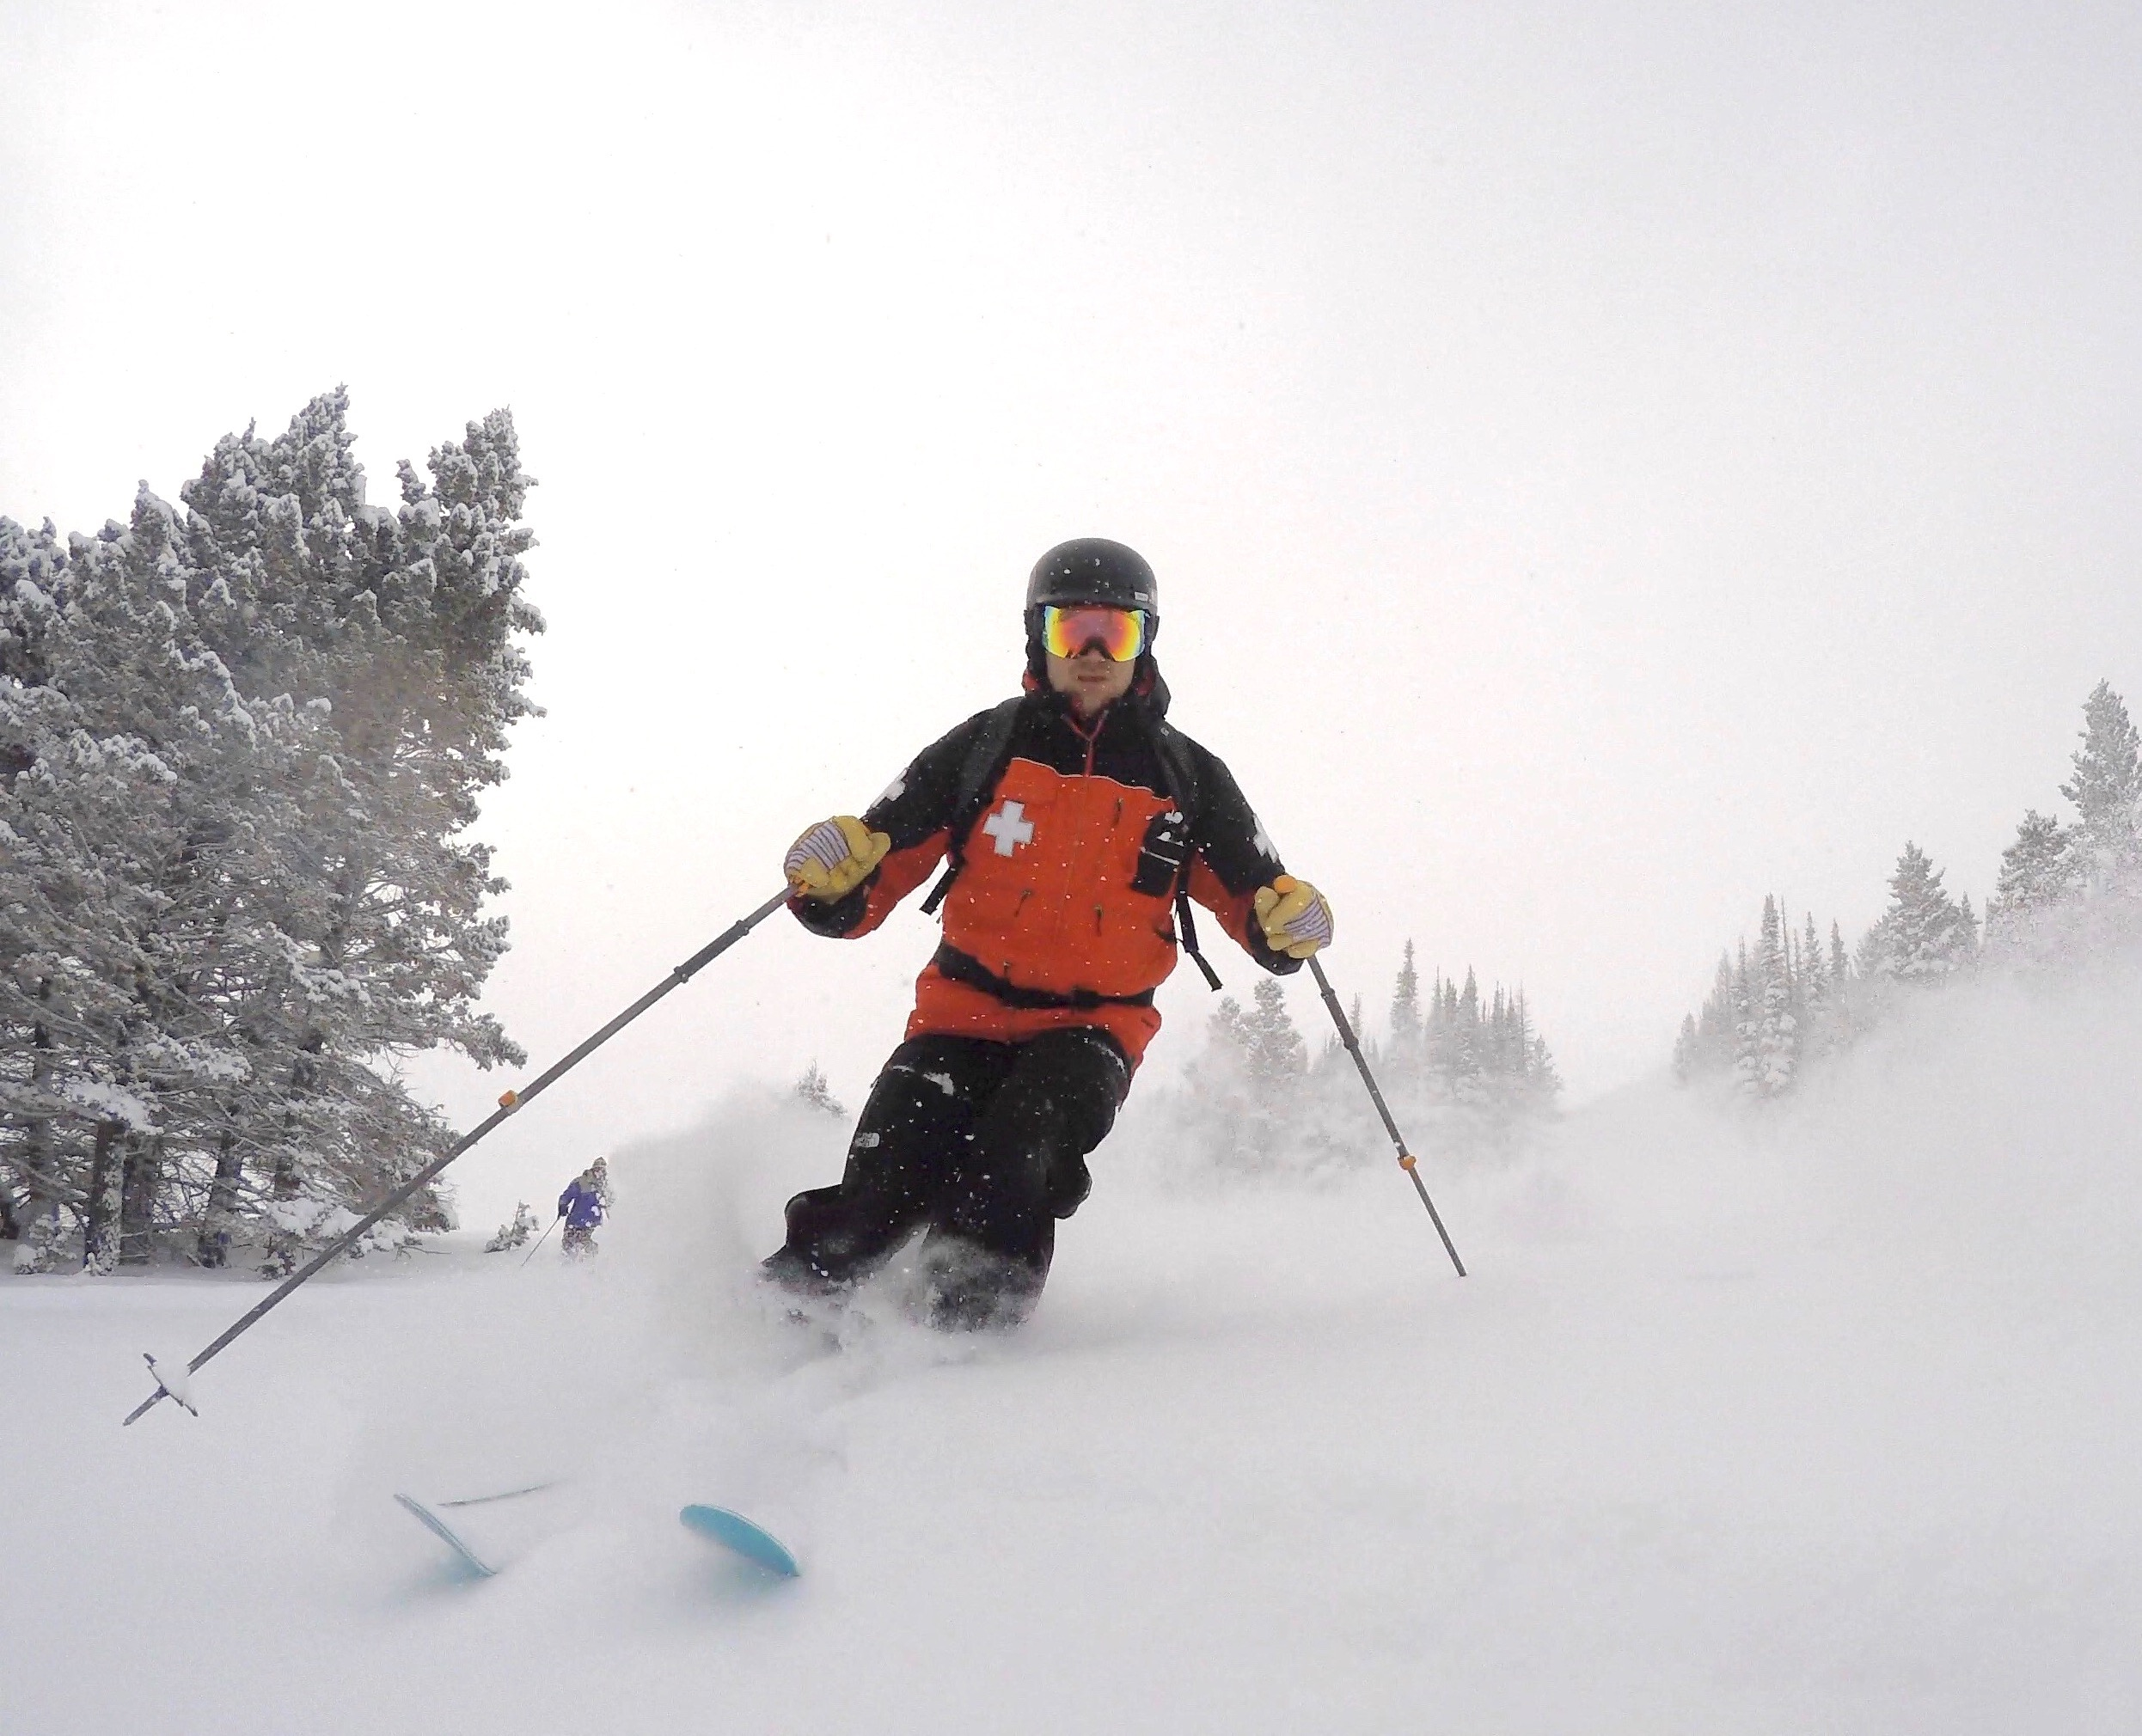 GREAT DIVIDE VOLUNTEER SKI PATROL - GREAT DIVIDE